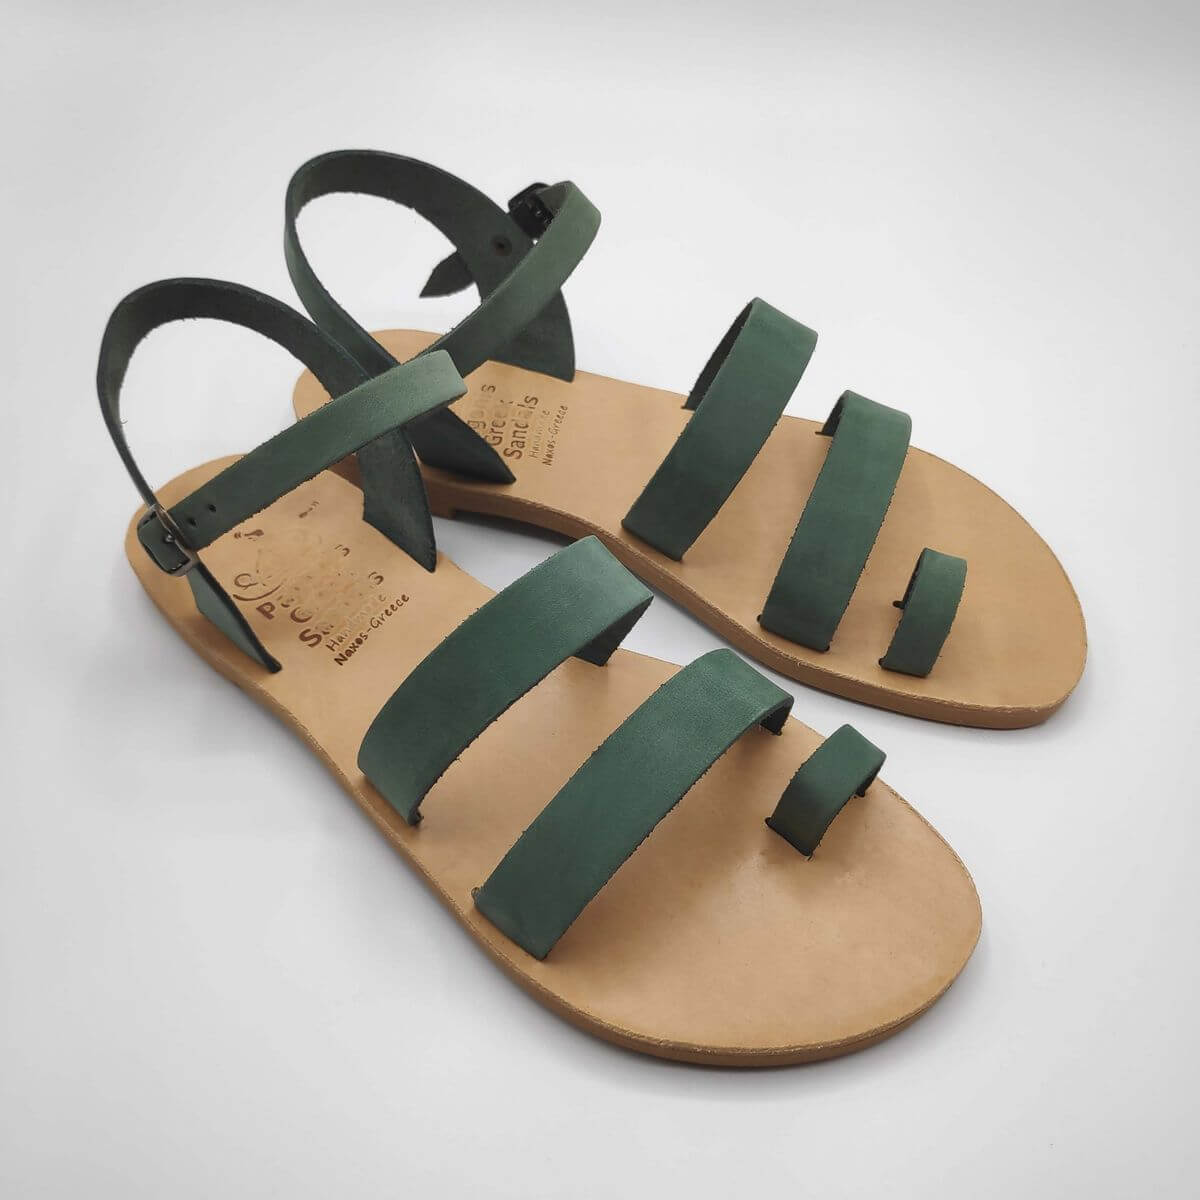 Green nubuck leather dressy sandals with two straps, toe ring and high ankle strap, side view